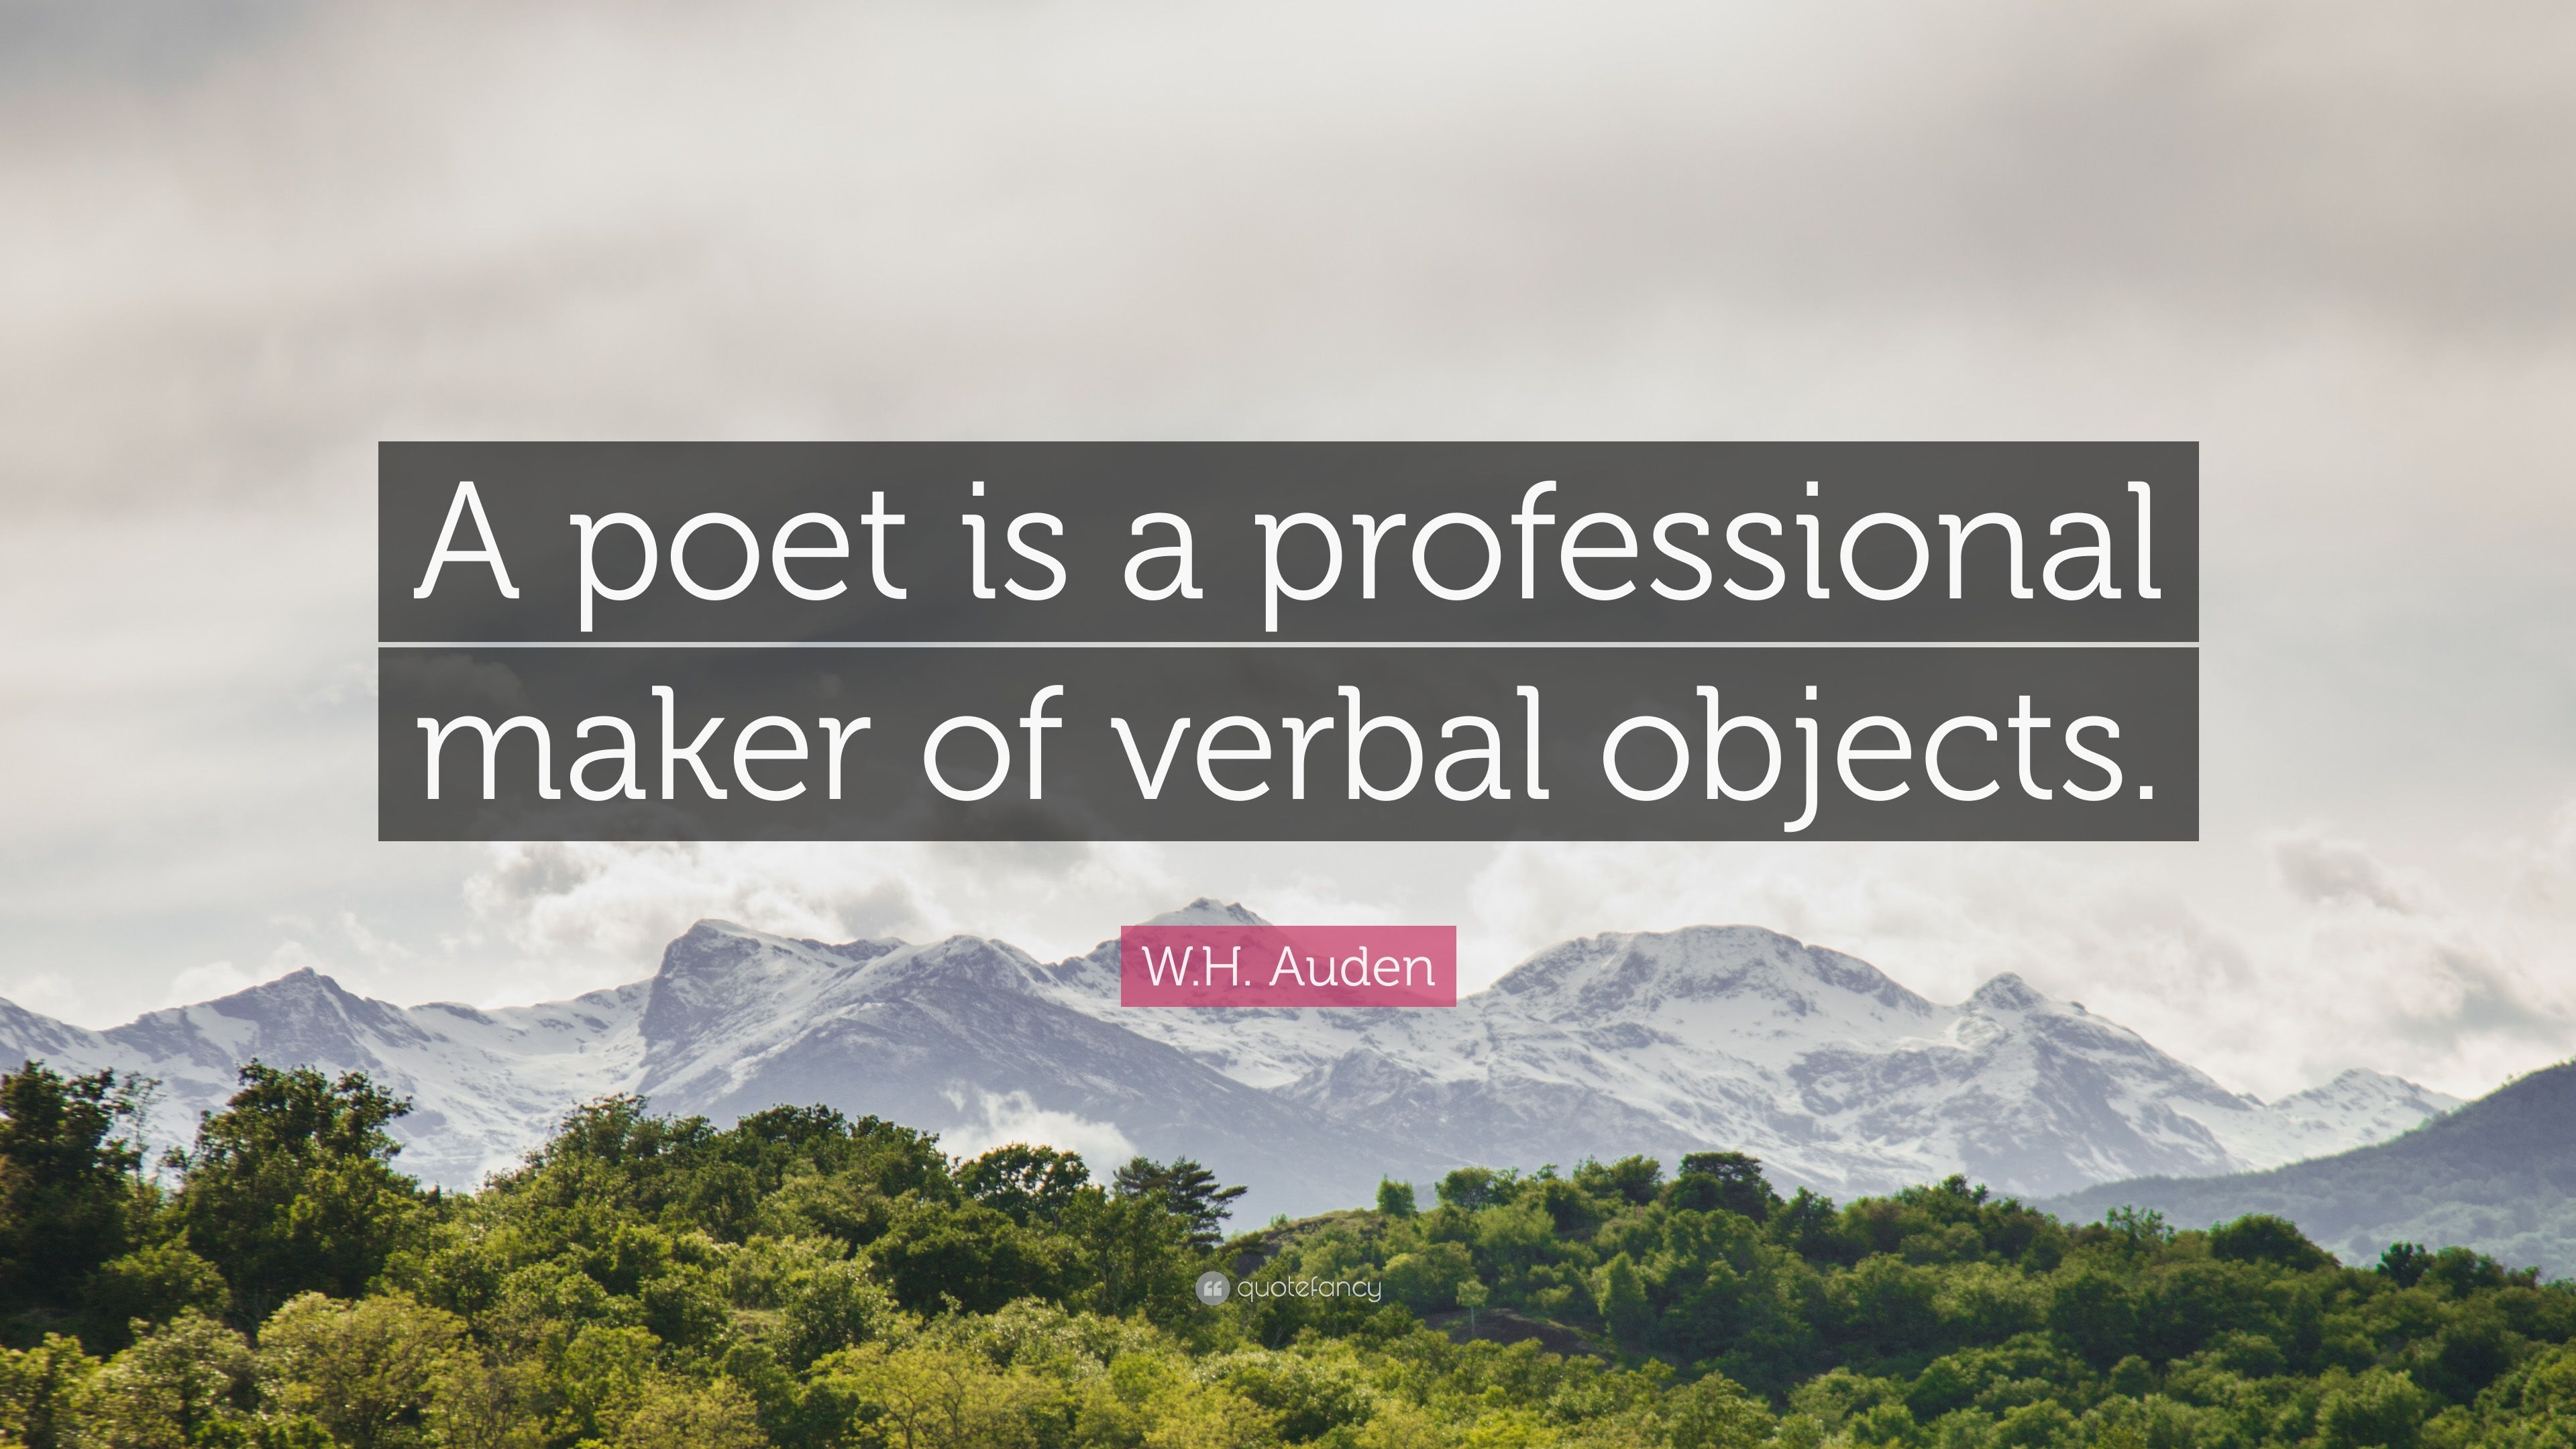 w h auden quote a poet is a professional maker of verbal objects